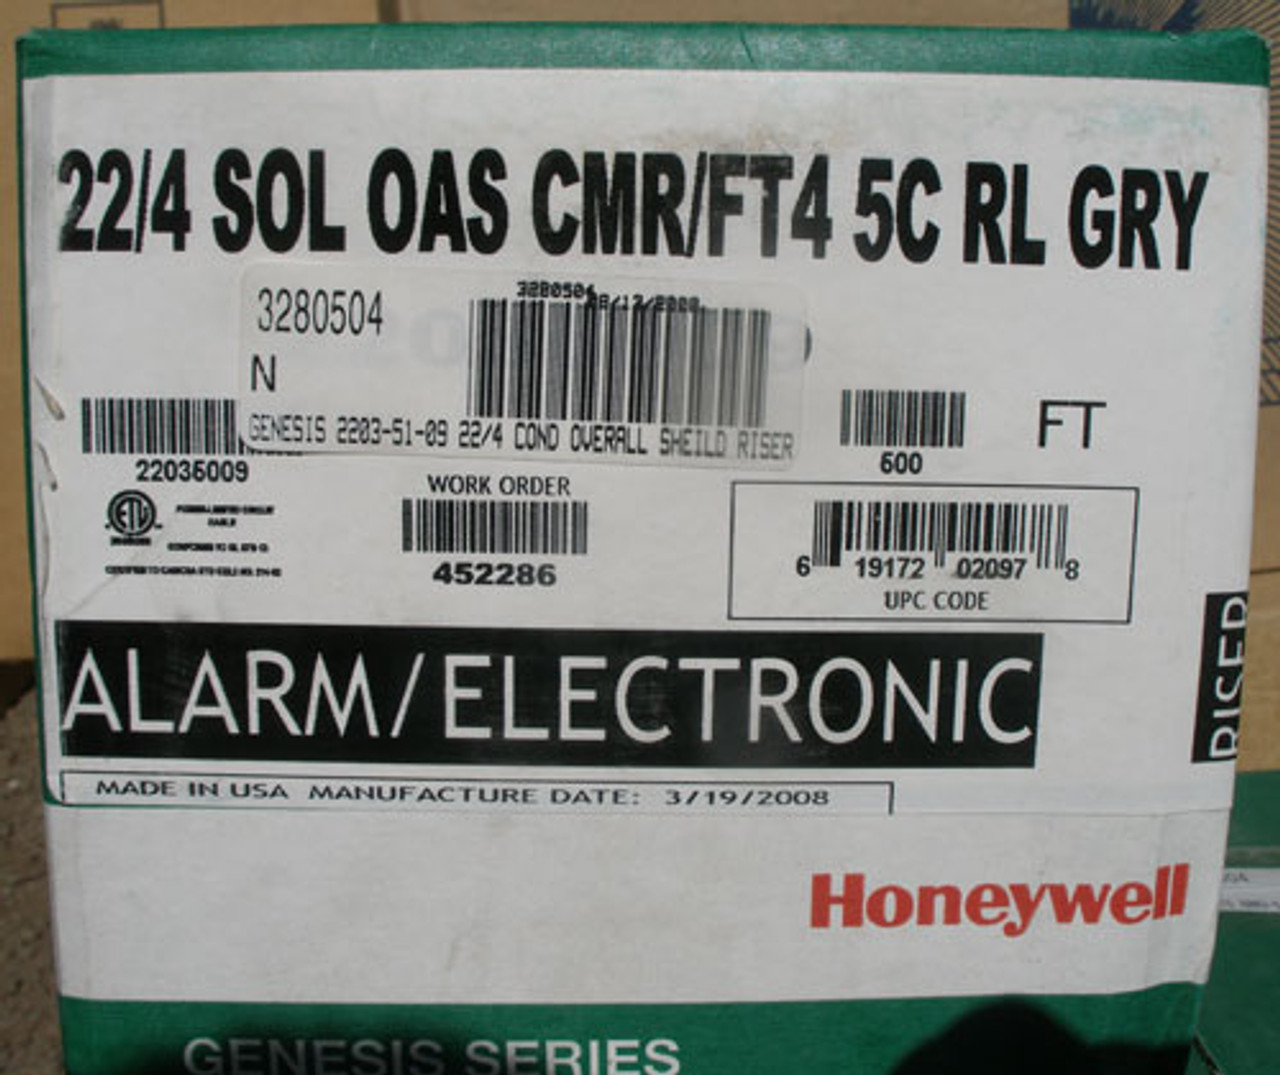 Honeywell 22/4 SOL OAS CMR/FT4 5C RL GRY 500 Ft Cabling Wire